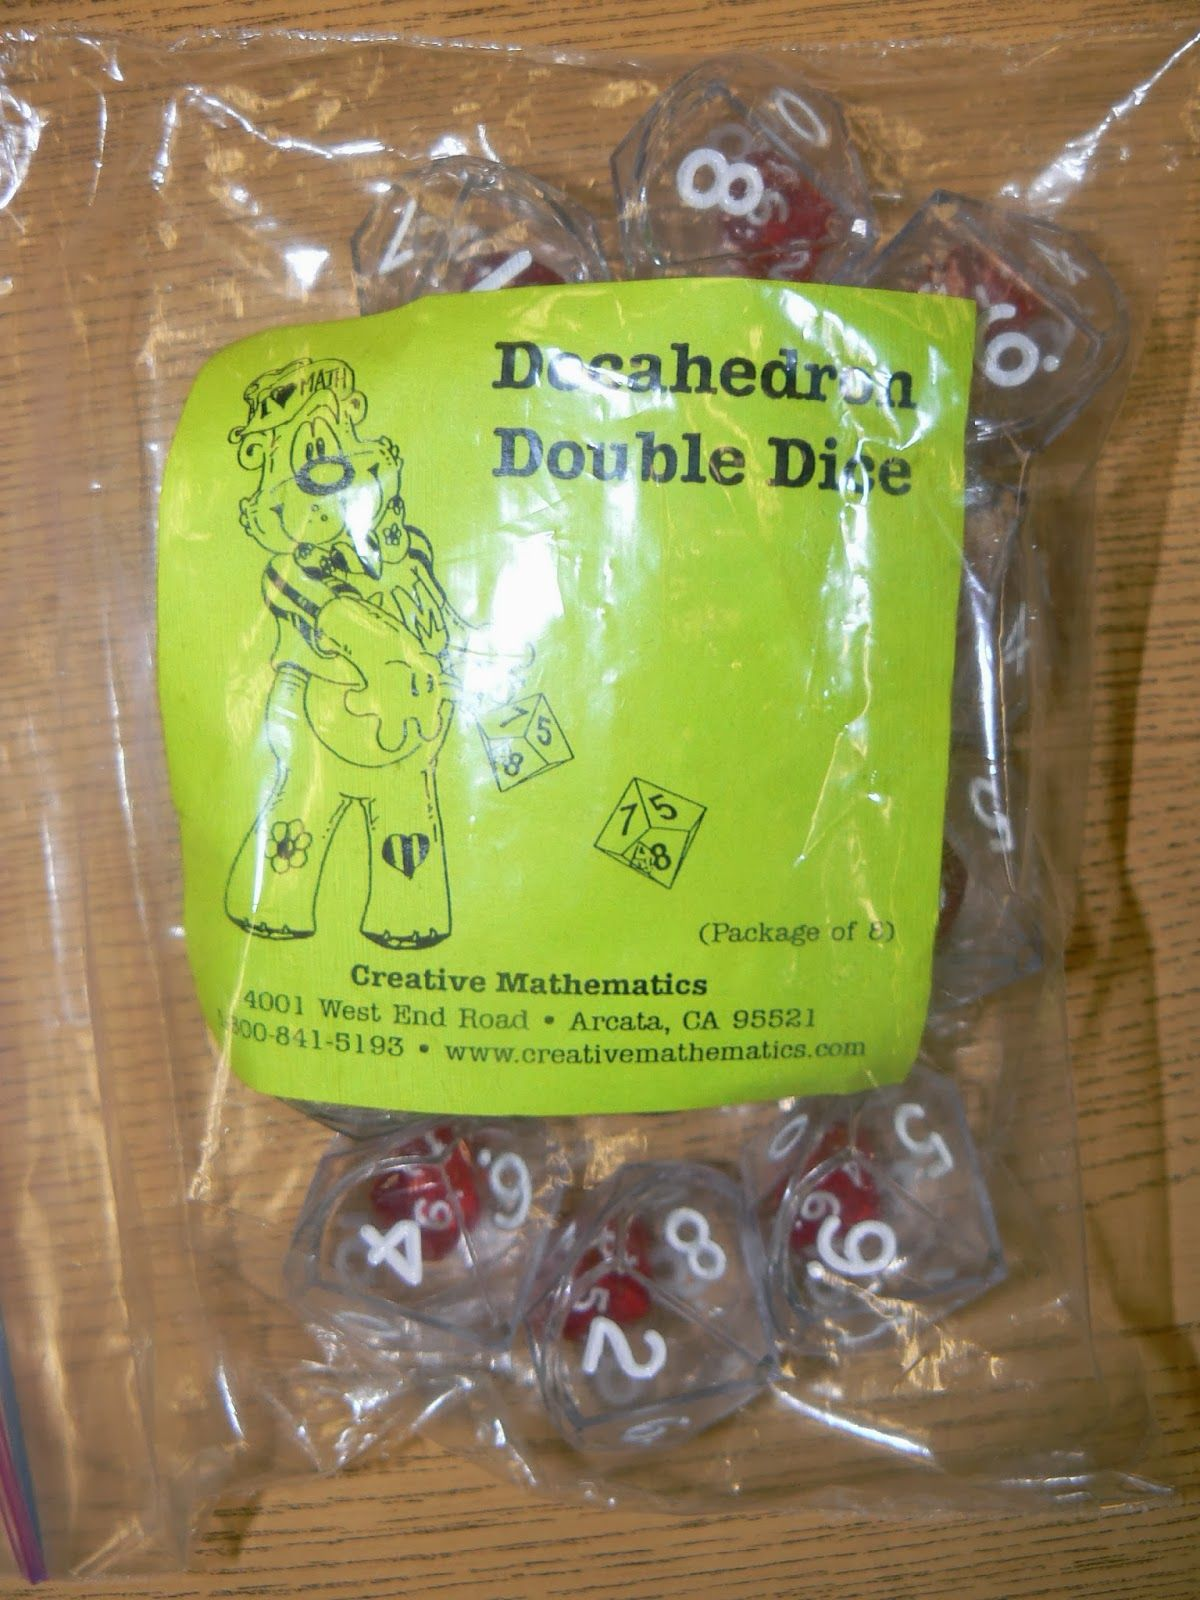 We Used Decahedron Double Dice To Practice Part Part Whole